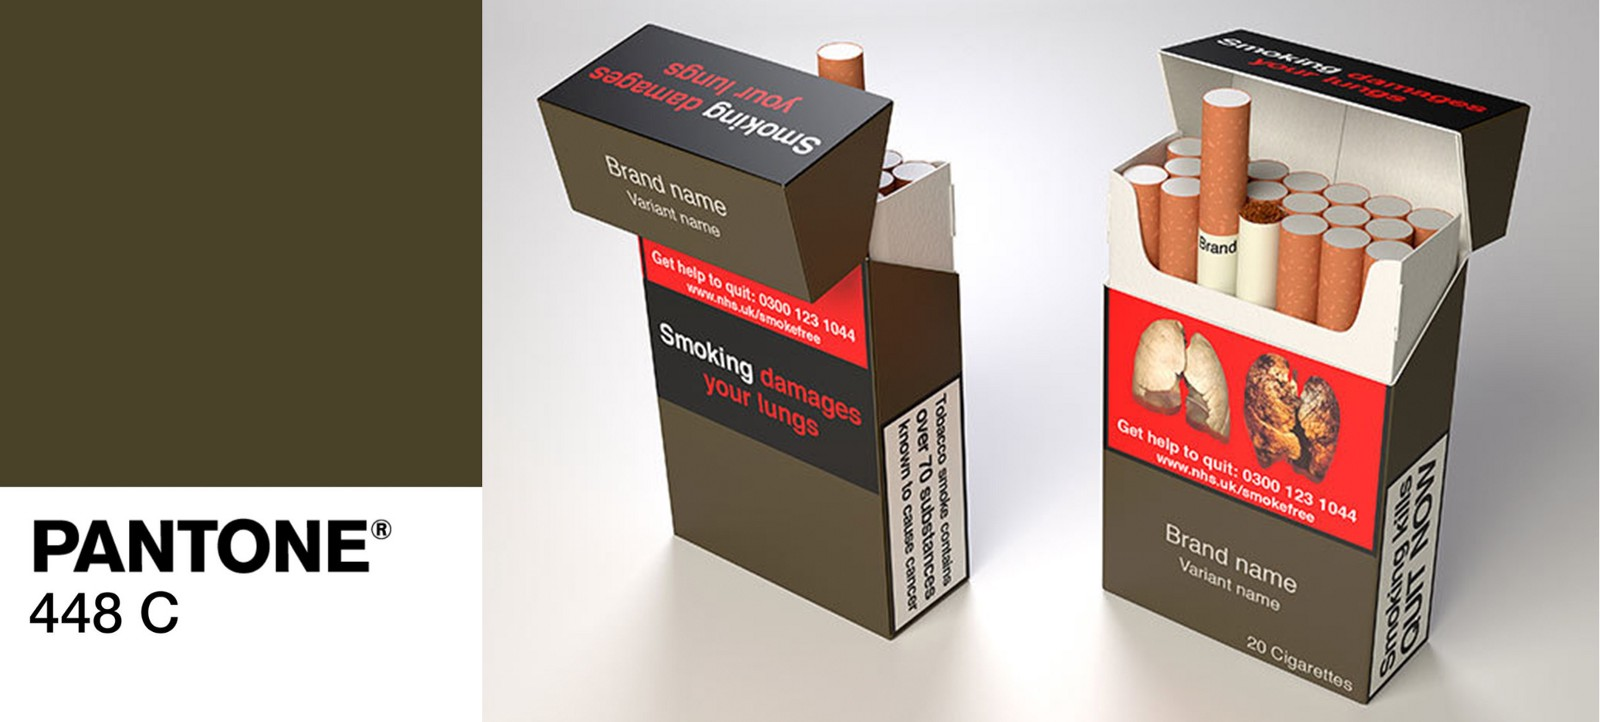 A swatch of an ugly khaki colour and two packets of cigarettes using that colour in the branding.